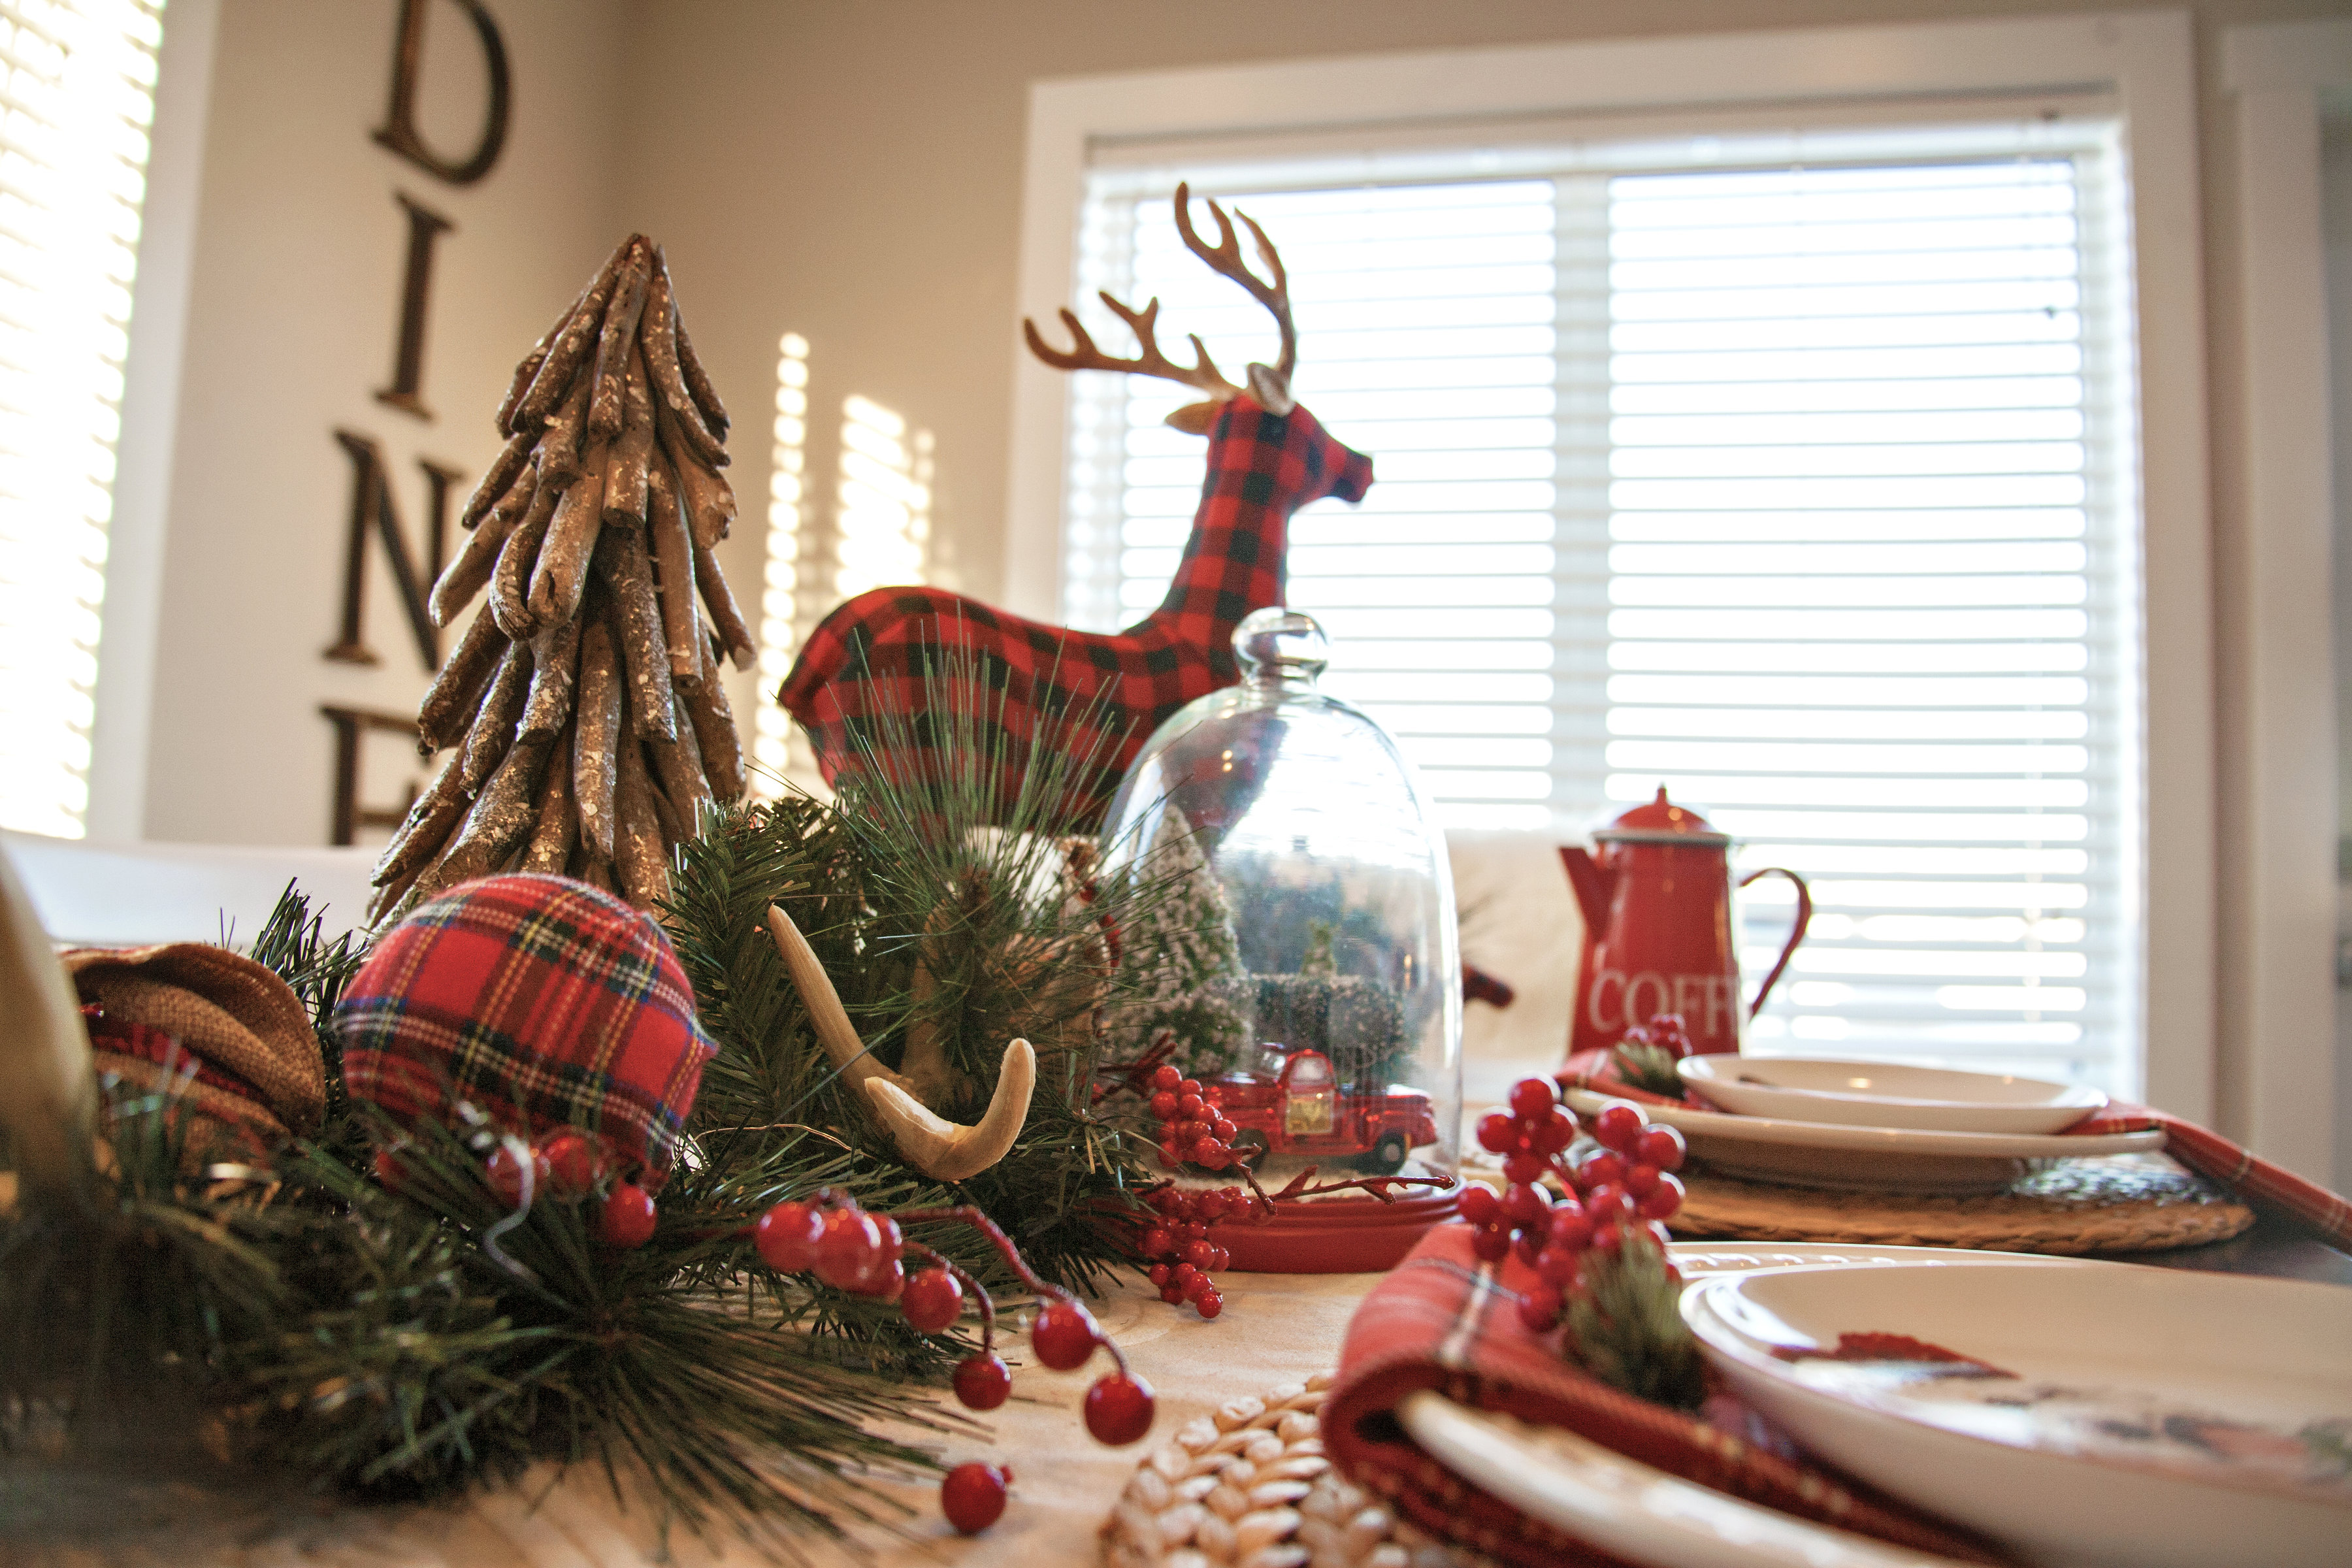 Our Christmas Home Tour & Our Christmas Home Tour - Spruce Homes